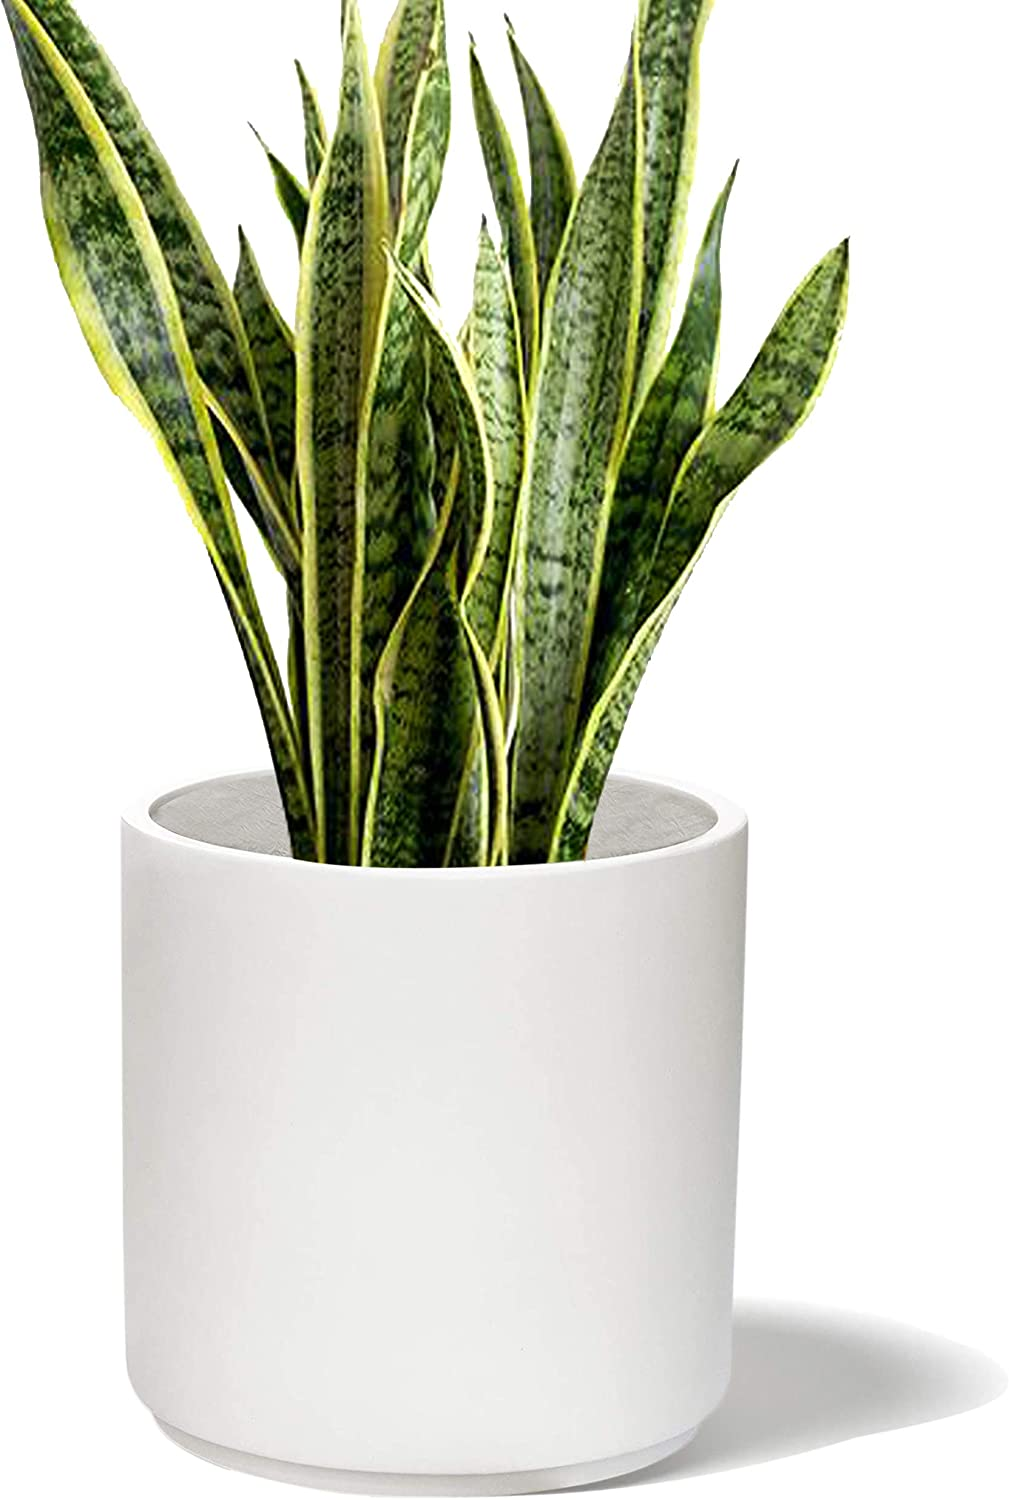 """Elly Décor 10"""" Planter Drainage Hole and Plug   Round Cylinder Pot   Indoors and Outdoors   Fits Mid Century Plant Stand Modern, 10 inch, White"""